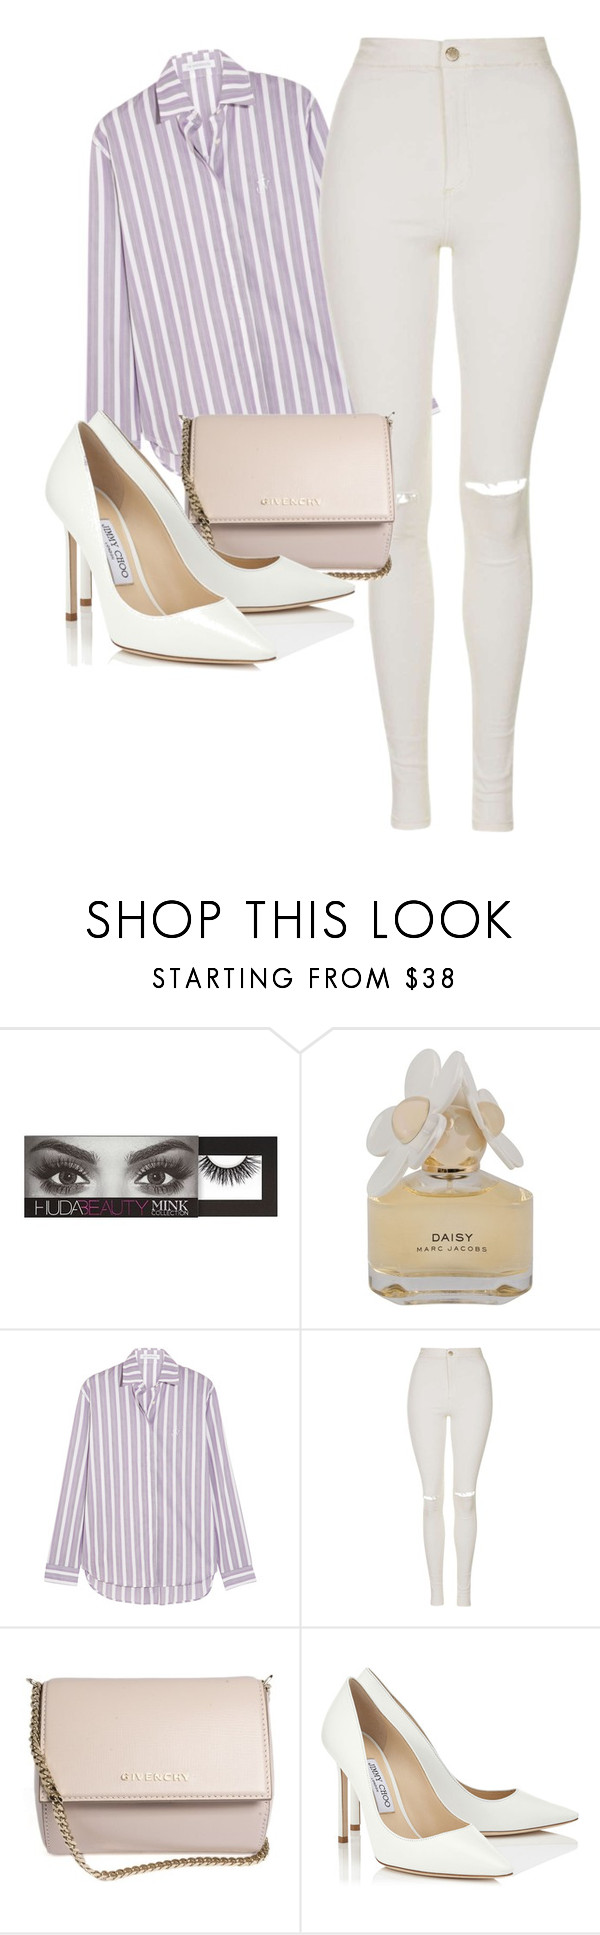 """three hundred and thirty one"" by amywbu ❤ liked on Polyvore featuring Huda Beauty, Marc by Marc Jacobs, J.W. Anderson, Topshop, Givenchy and Jimmy Choo"